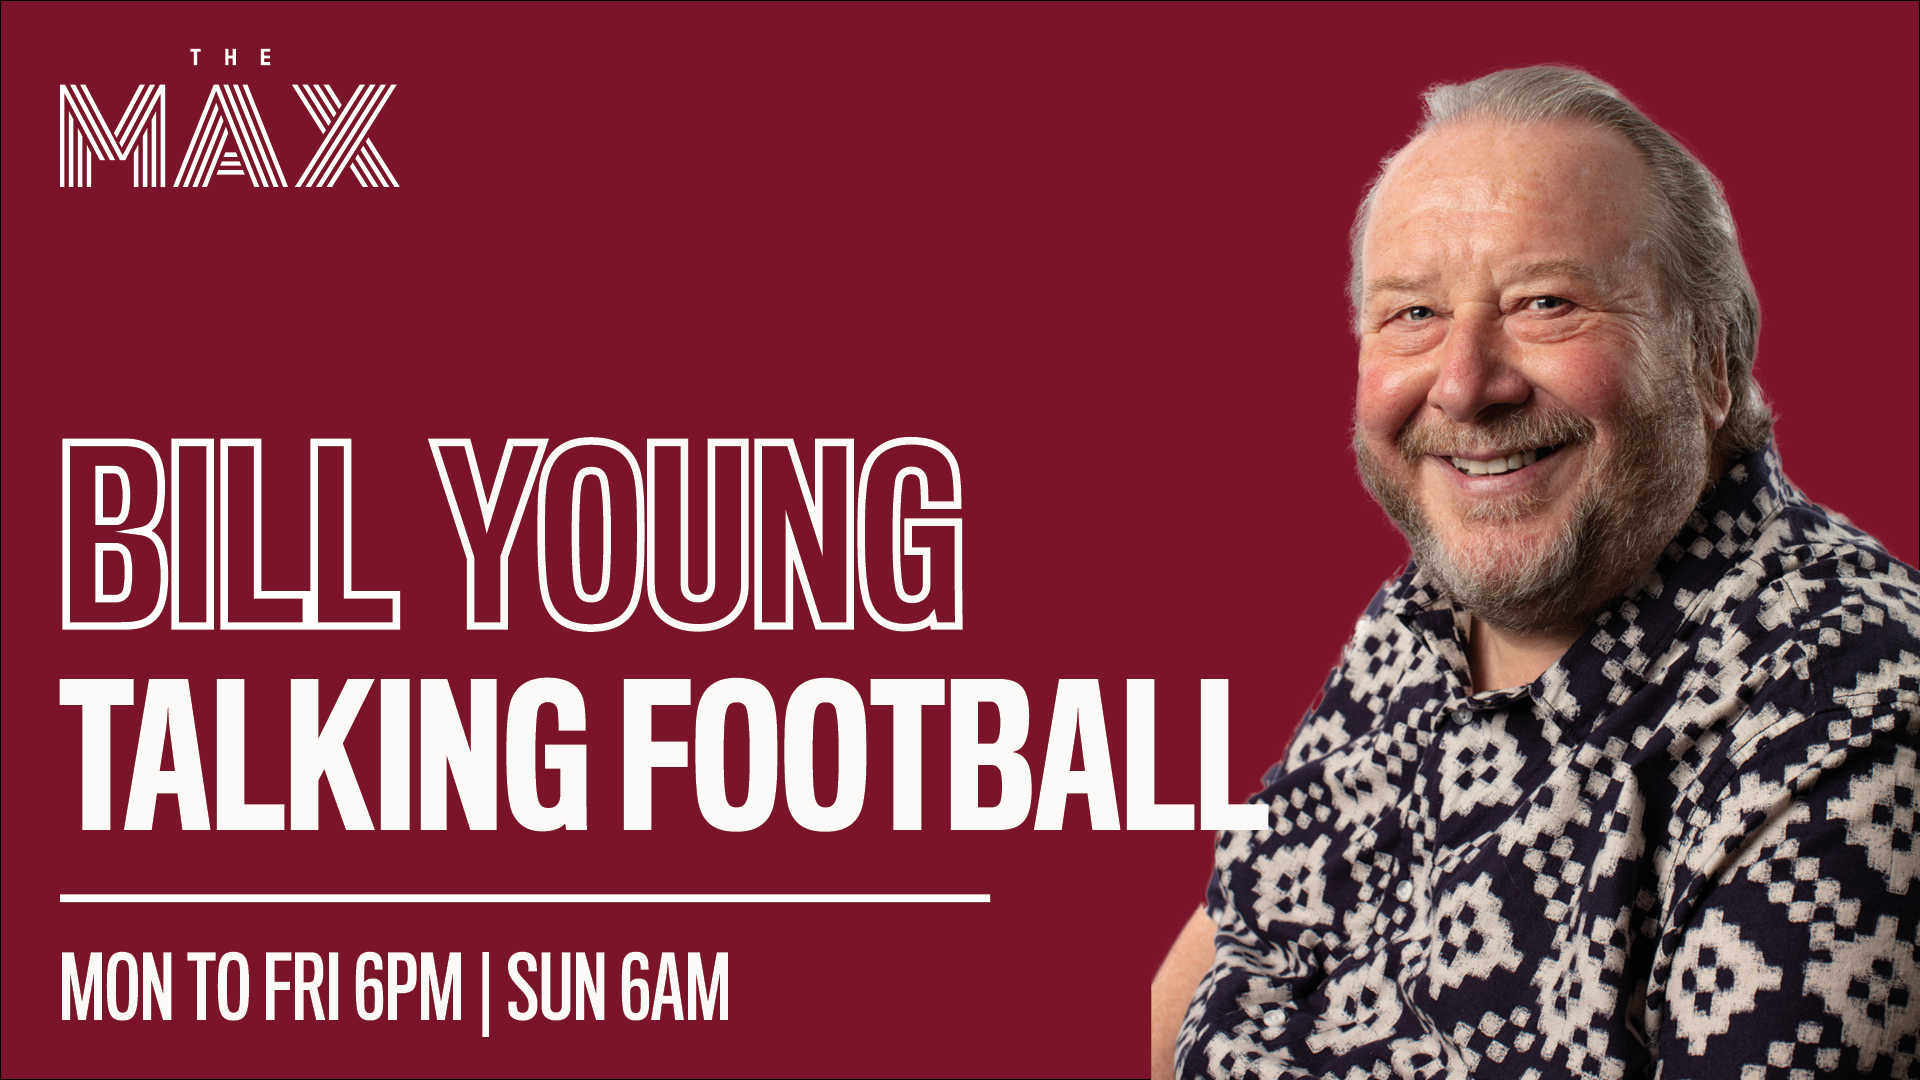 Talking Football with Bill Young - Tuesday 30th March